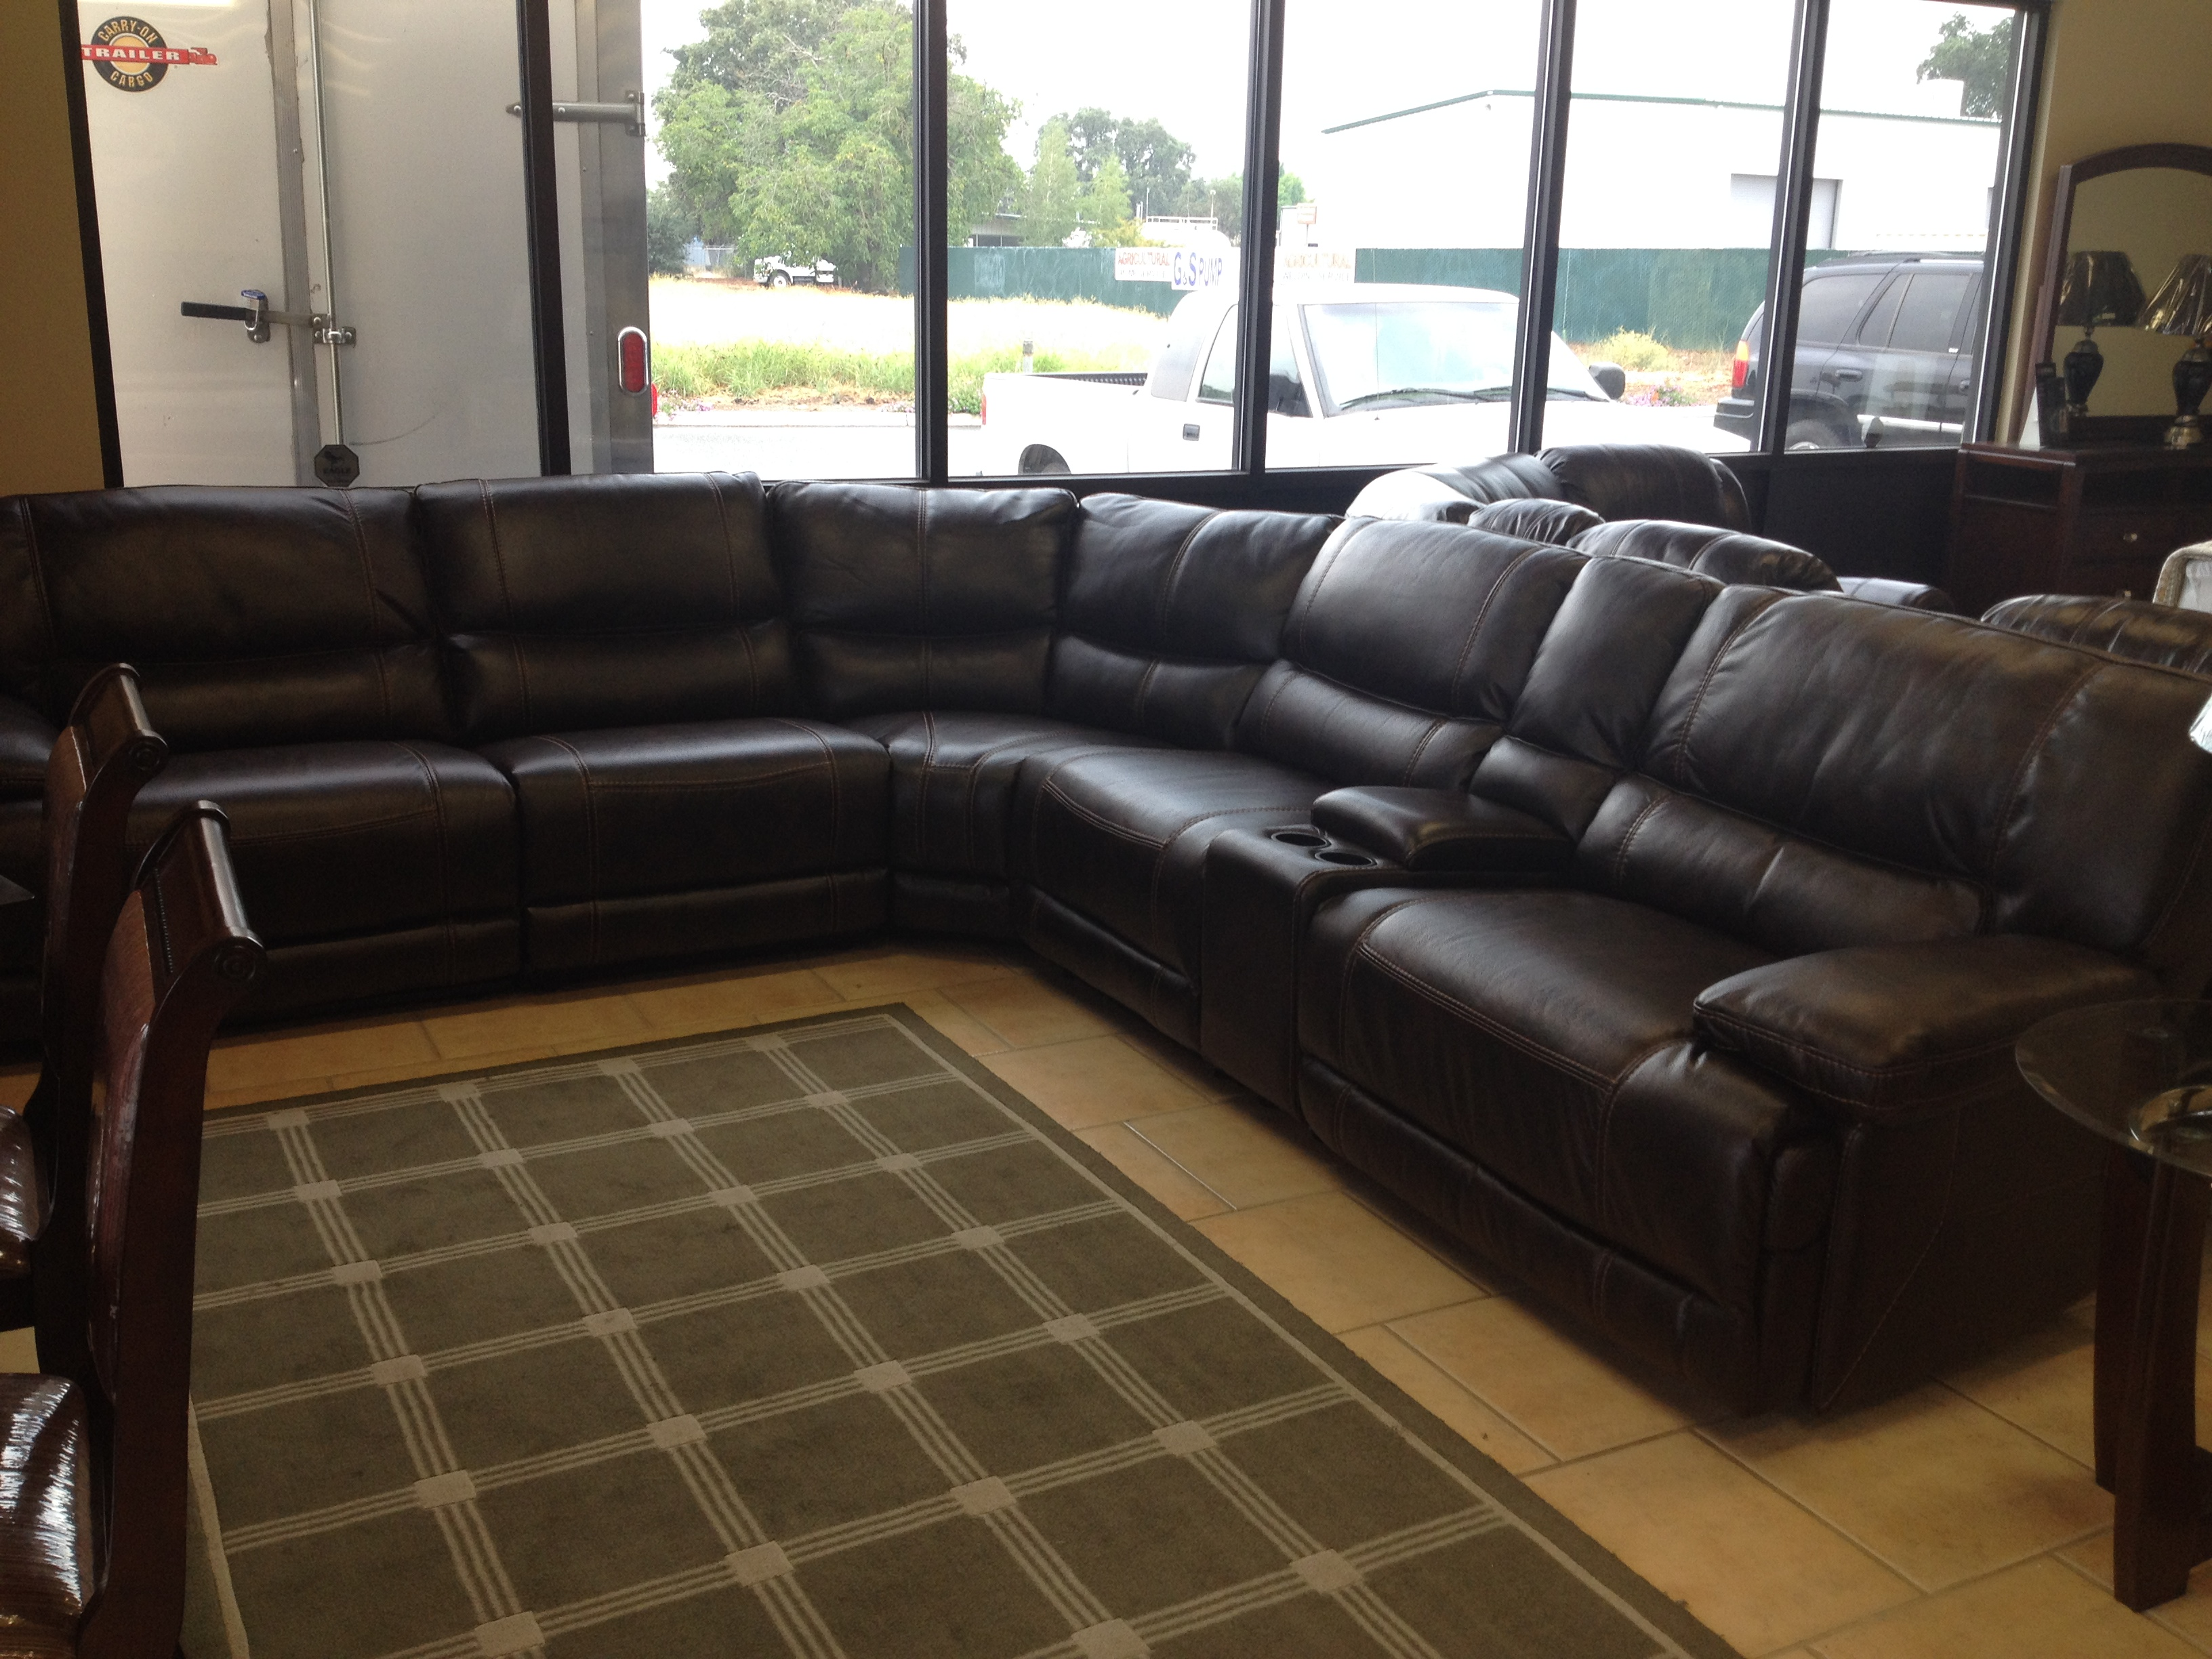 Sealy Living Room Furniture. Living Room  Knit Umber Sofa Love Seat 899 Chico Furniture Direct 4 U